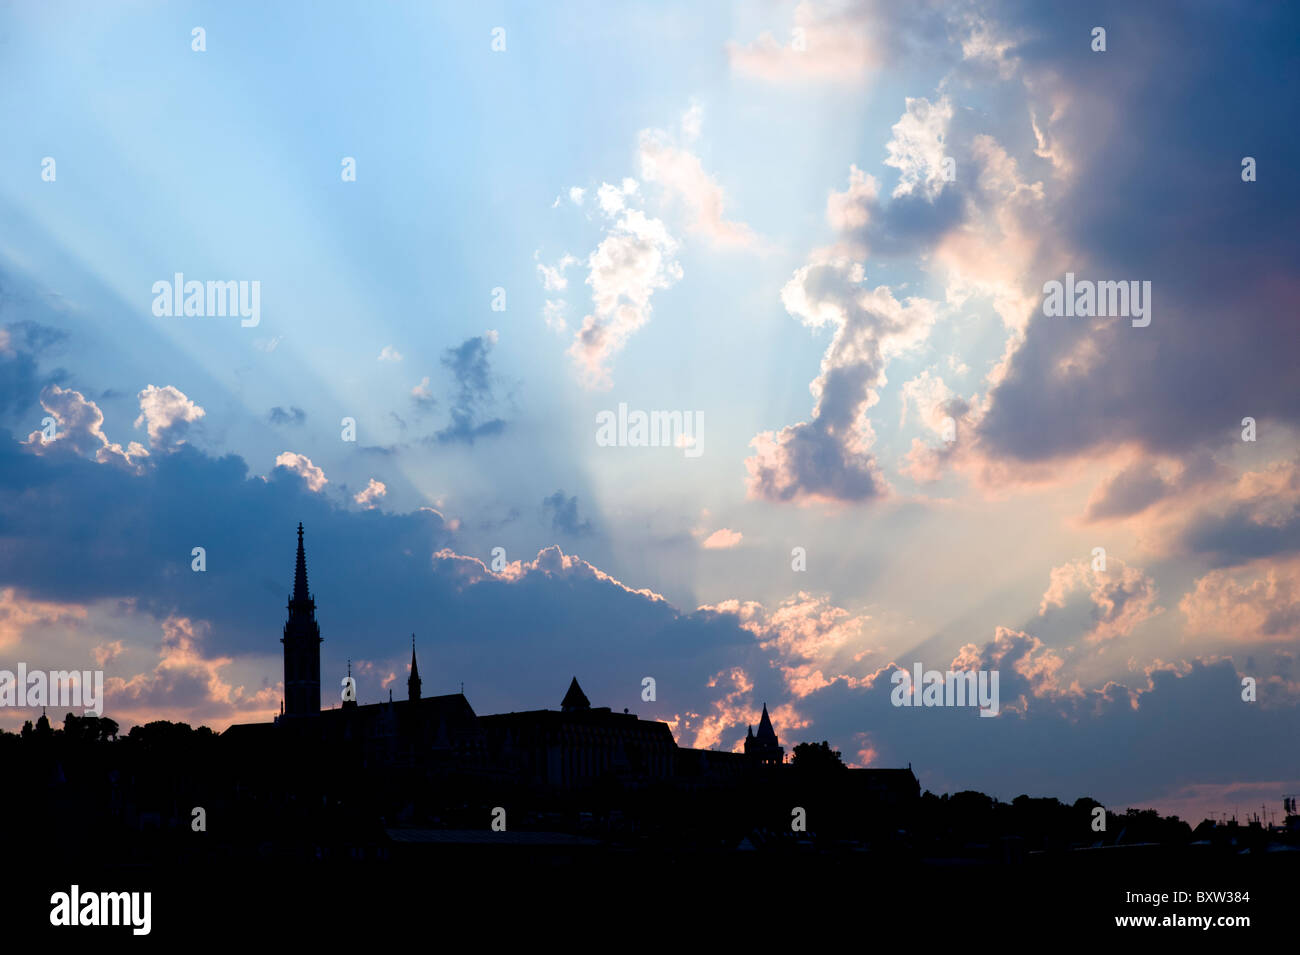 Silhouette of Budapest city skyline with dramatic sky, Hungary - Stock Image